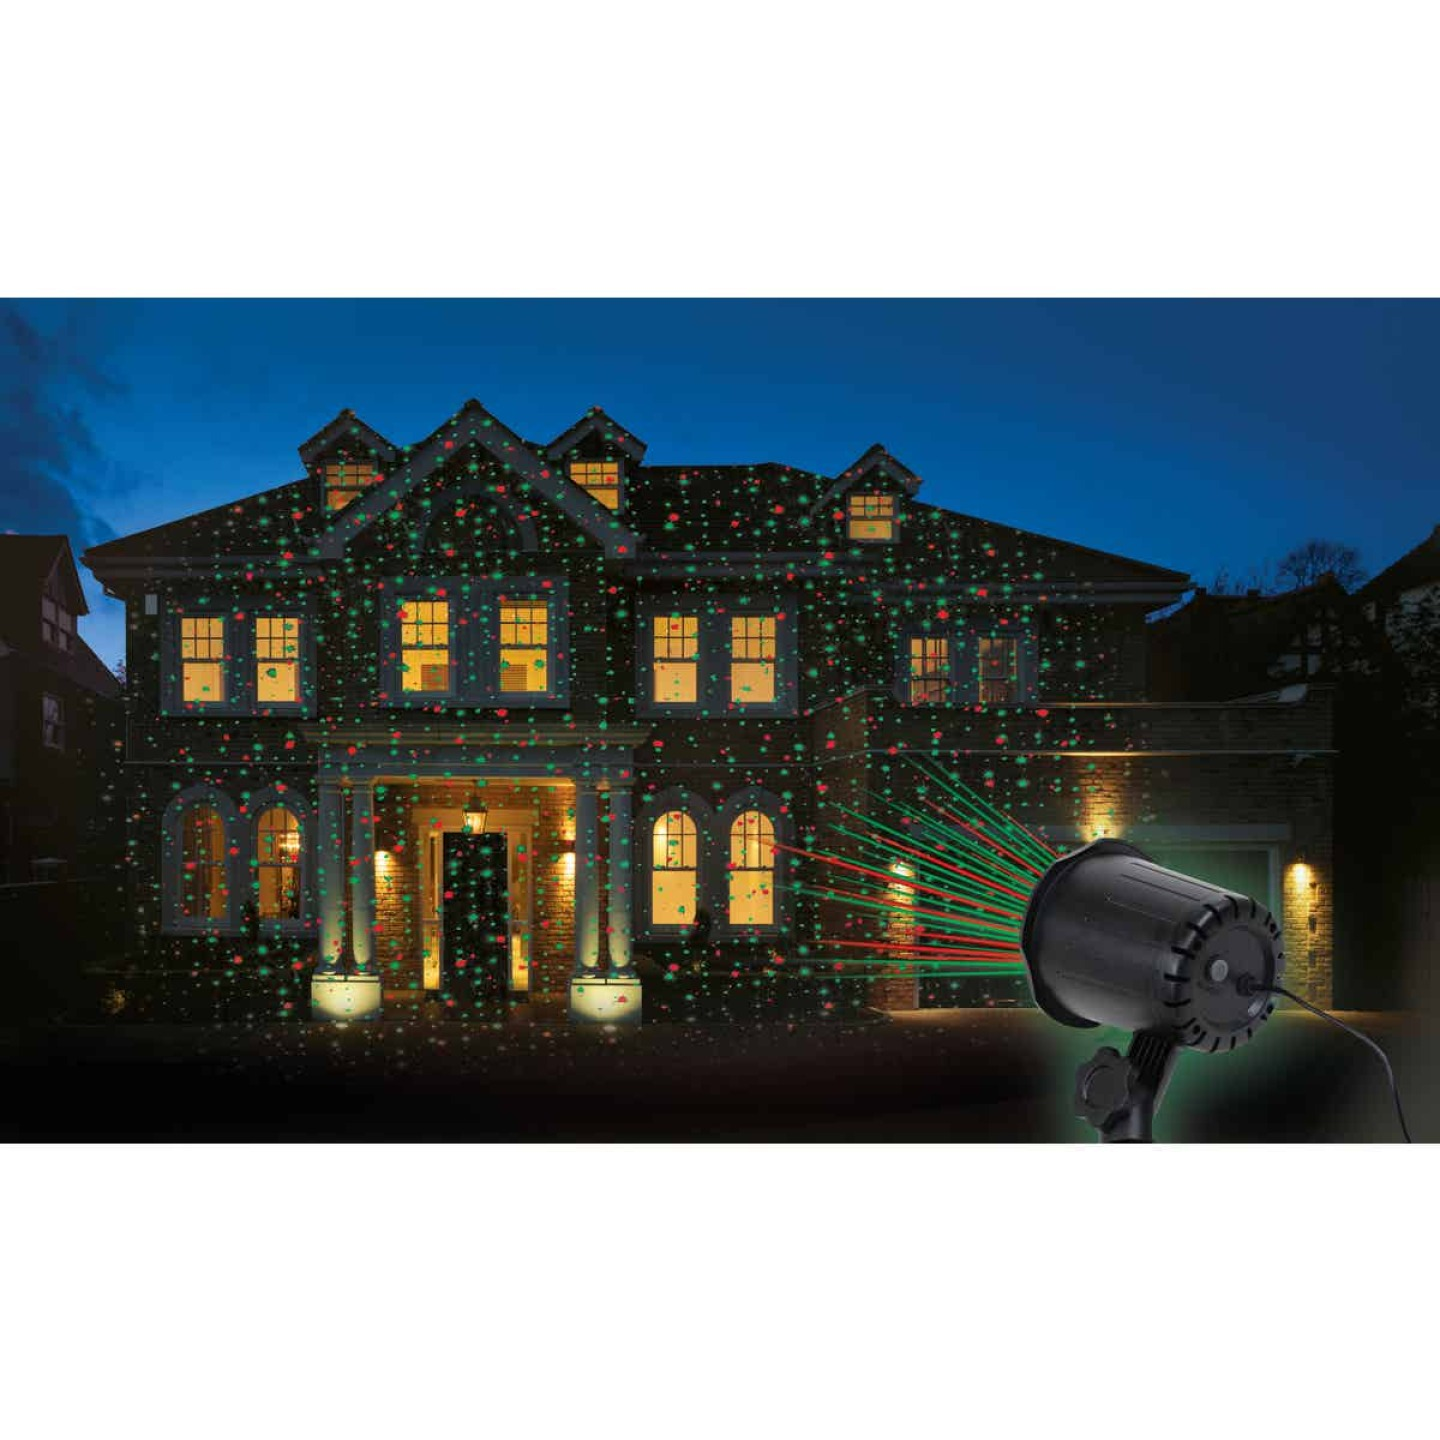 Prime Wire & Cable LED 5W Holiday Landscape Laser Light Projector Image 3